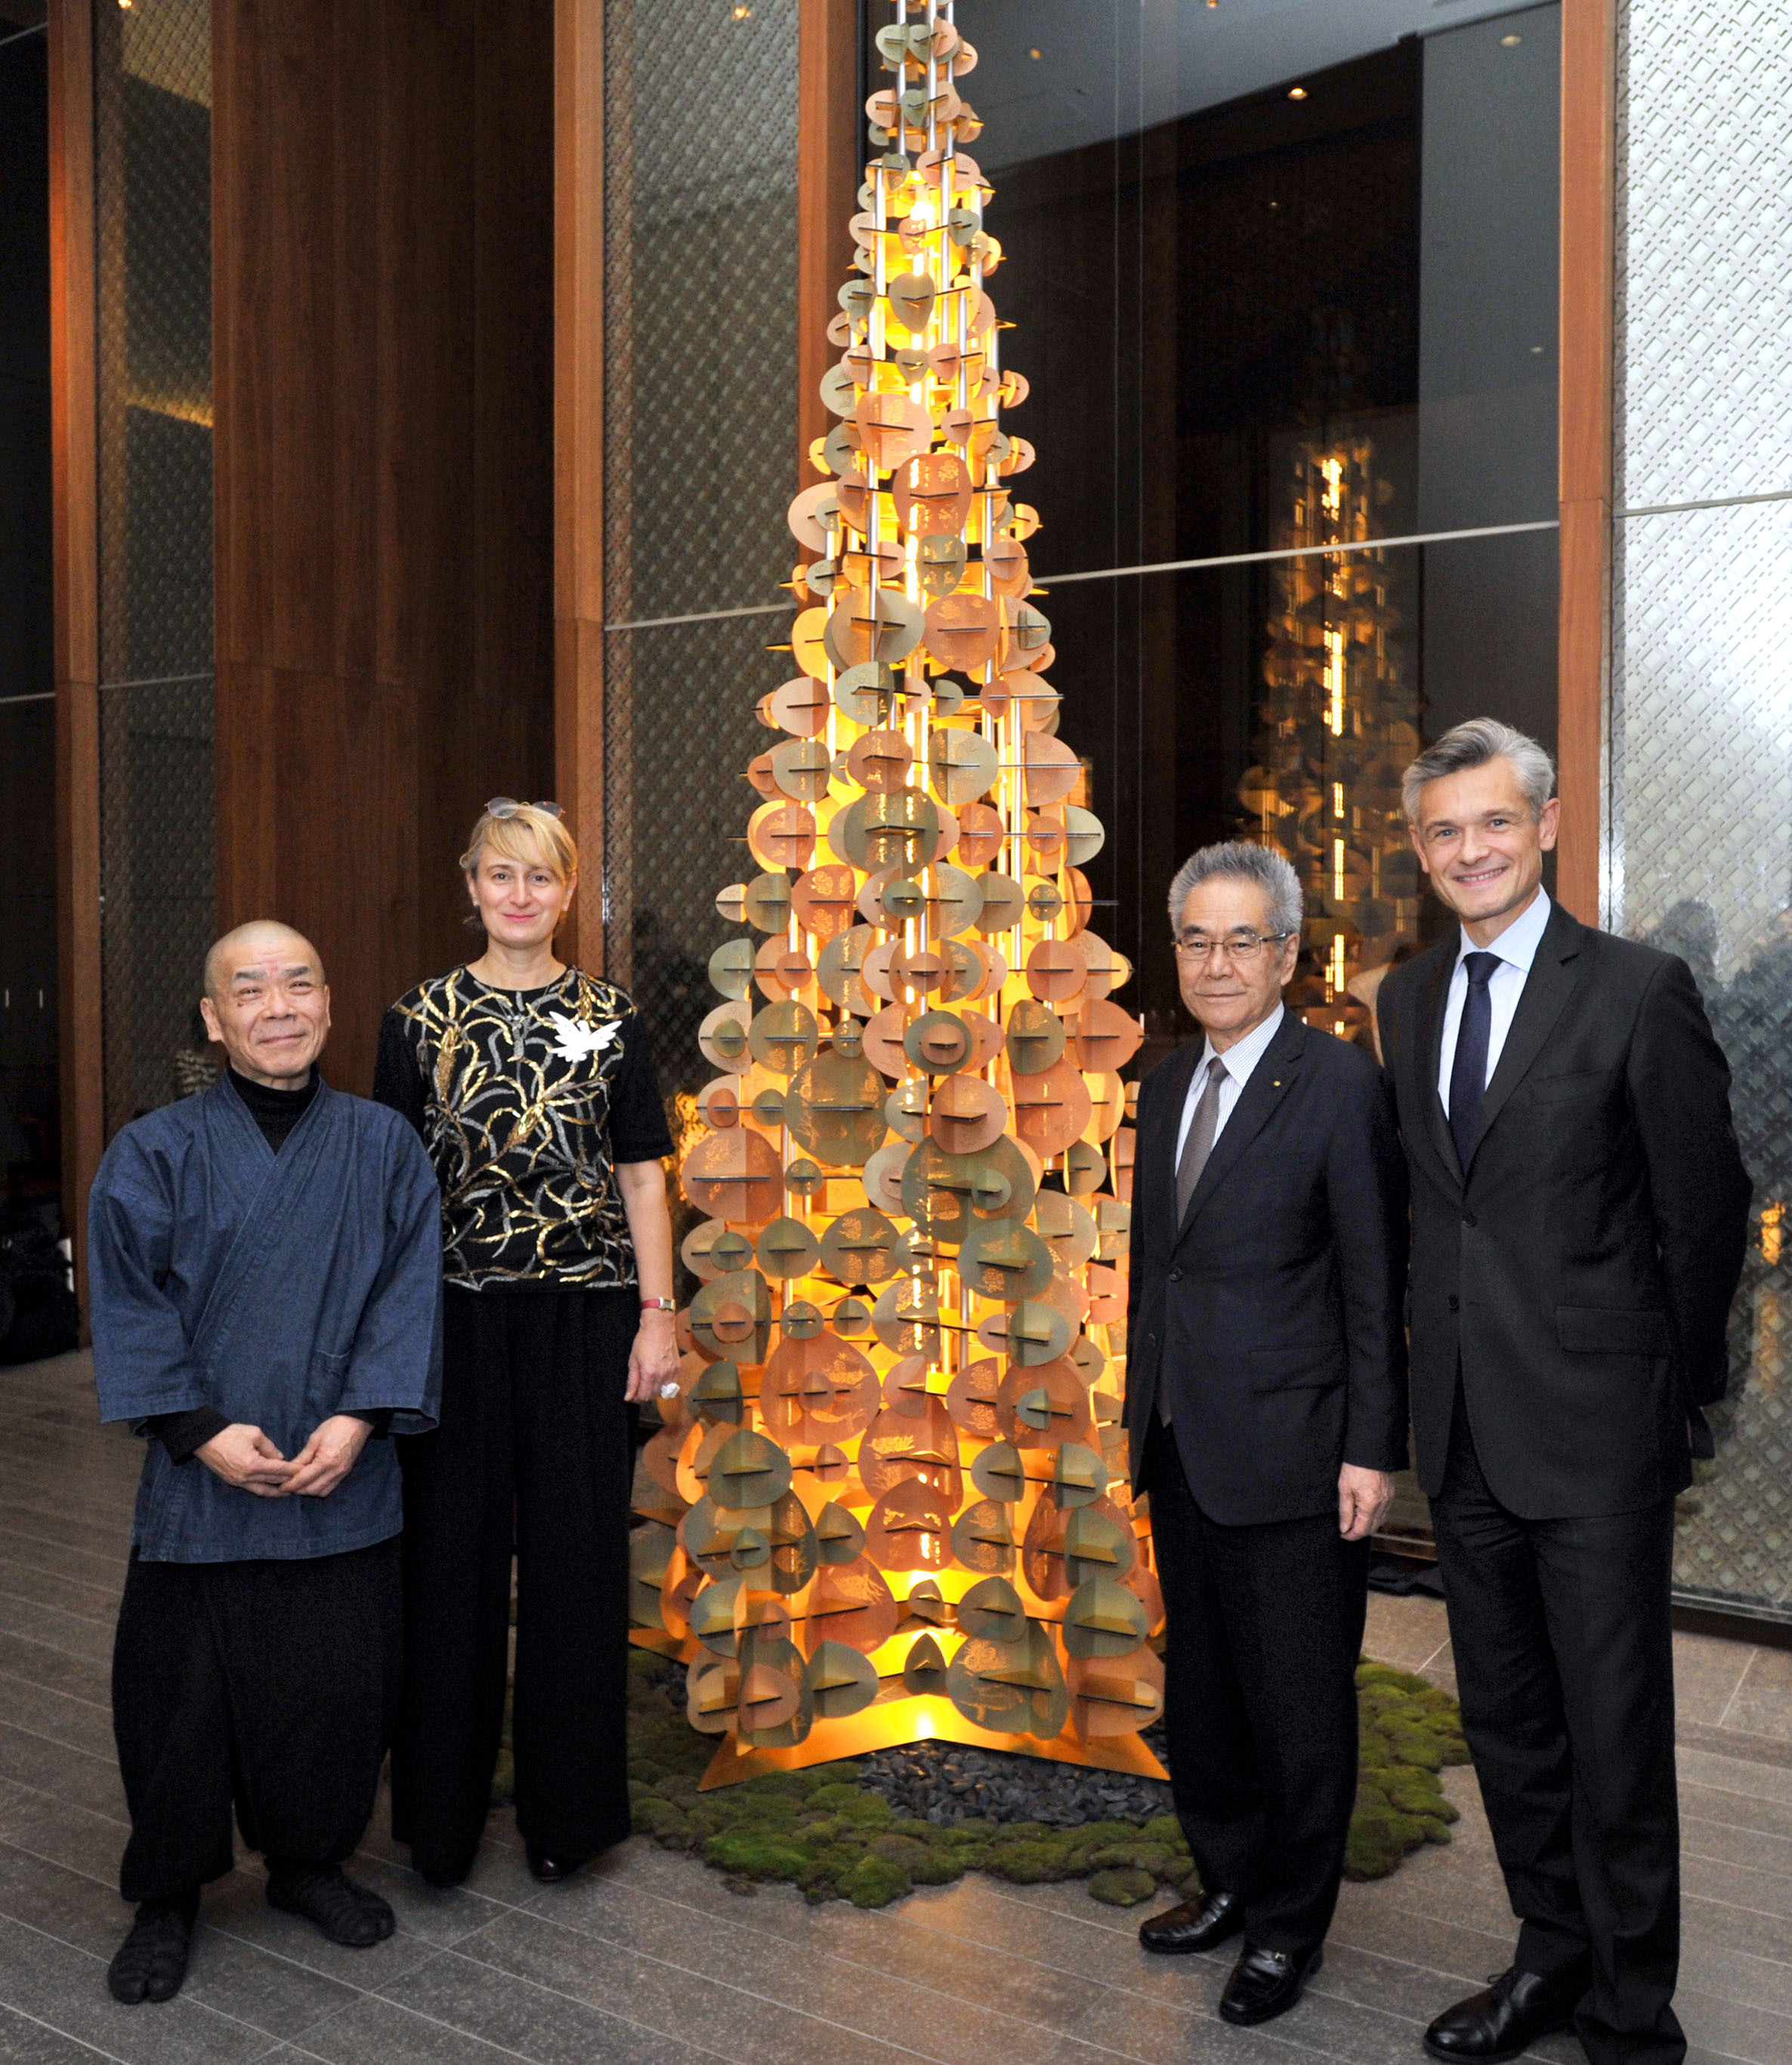 France-based paper installation artist Marianne Guely (second from left), who unites Japanese craft traditions in an original design with the Andaz Tokyo Christmas tree in the Andaz Salon, poses with, (from left), Takeshi Nishimura, Yuzen-engraving artisan, Shigeru Takeo, president of TAKEO Co. and Arnaud de Saint-Exupery, general manager of the Andaz Tokyo on Nov. 27.   YOSHIAKI MIURA